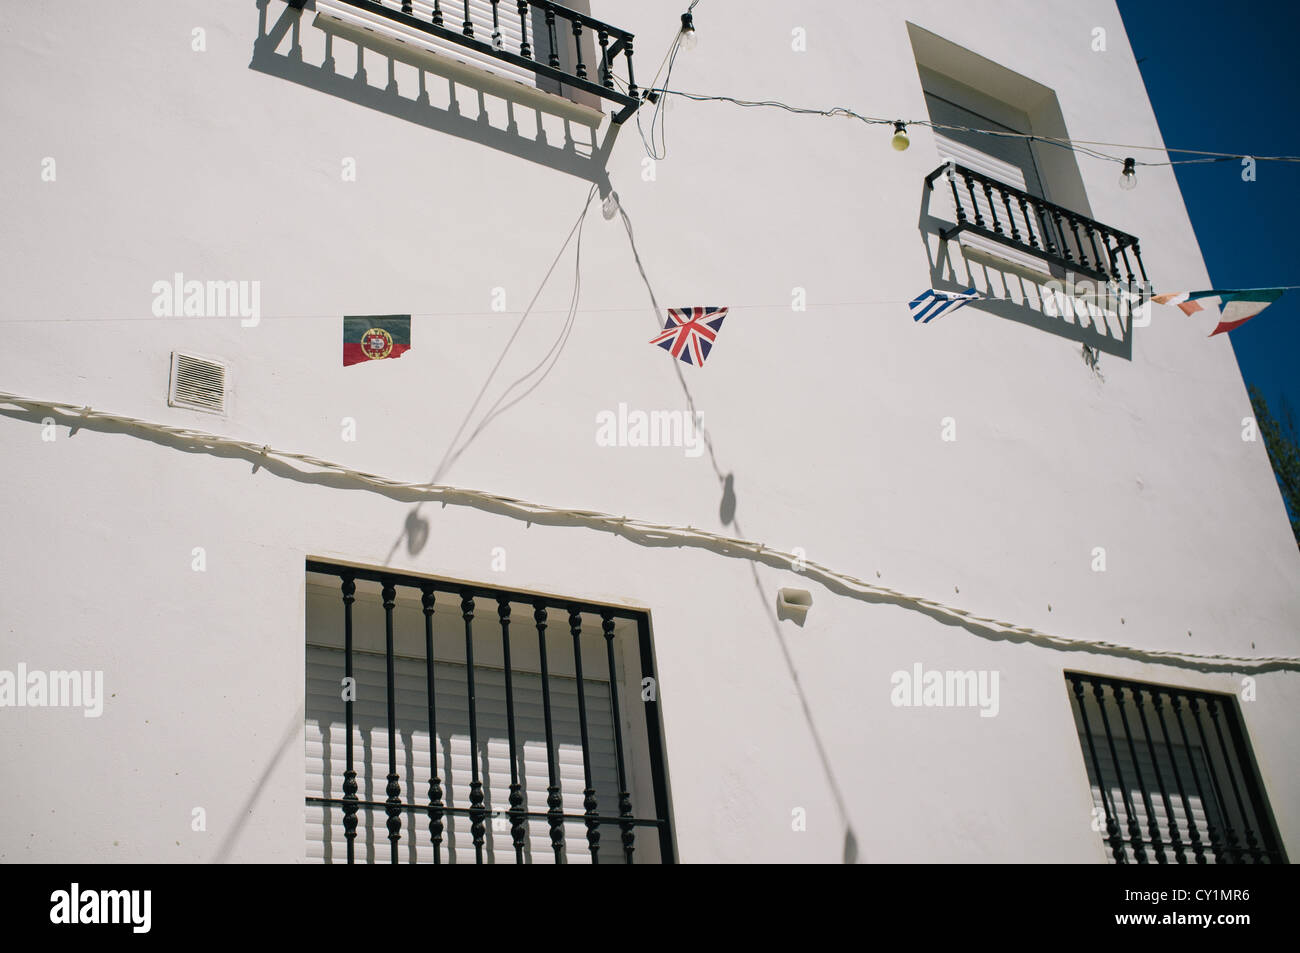 Portuguese An Spanish Flags Stock Photos Electrical Wiring In Hanging Between Houses The Small Hamlet Of La Toba Jaen Spain